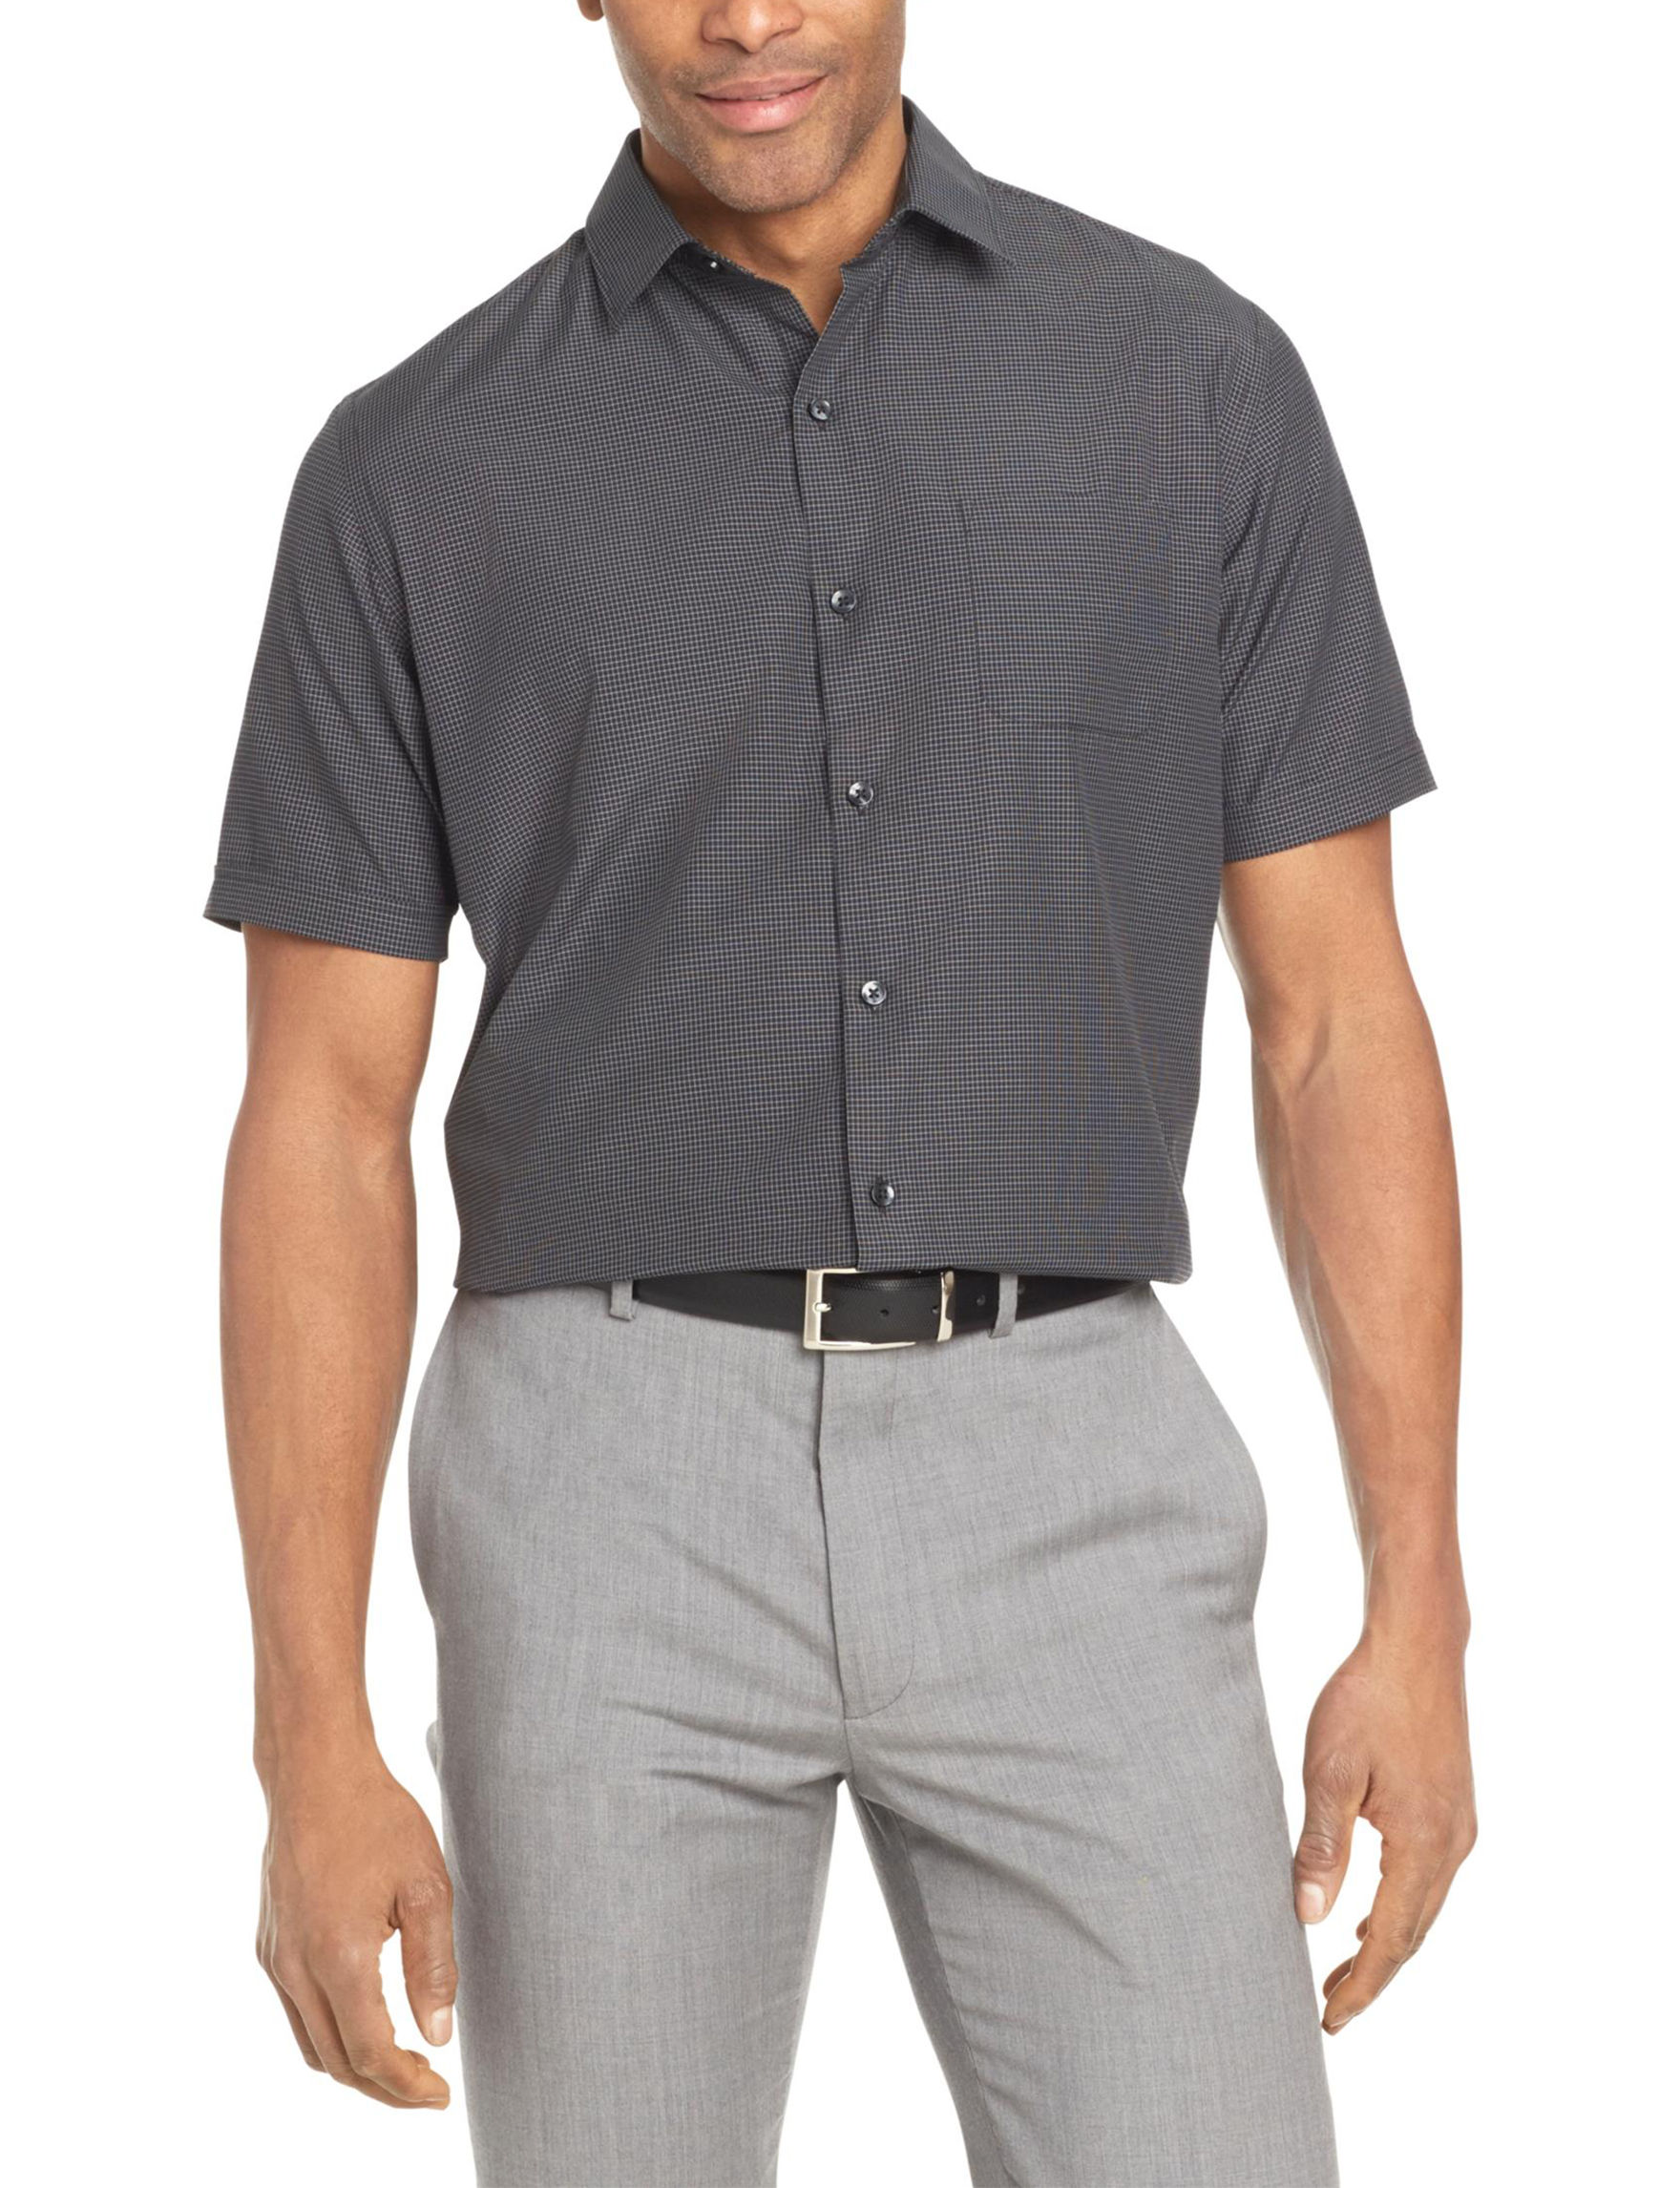 Van Heusen Black Casual Button Down Shirts